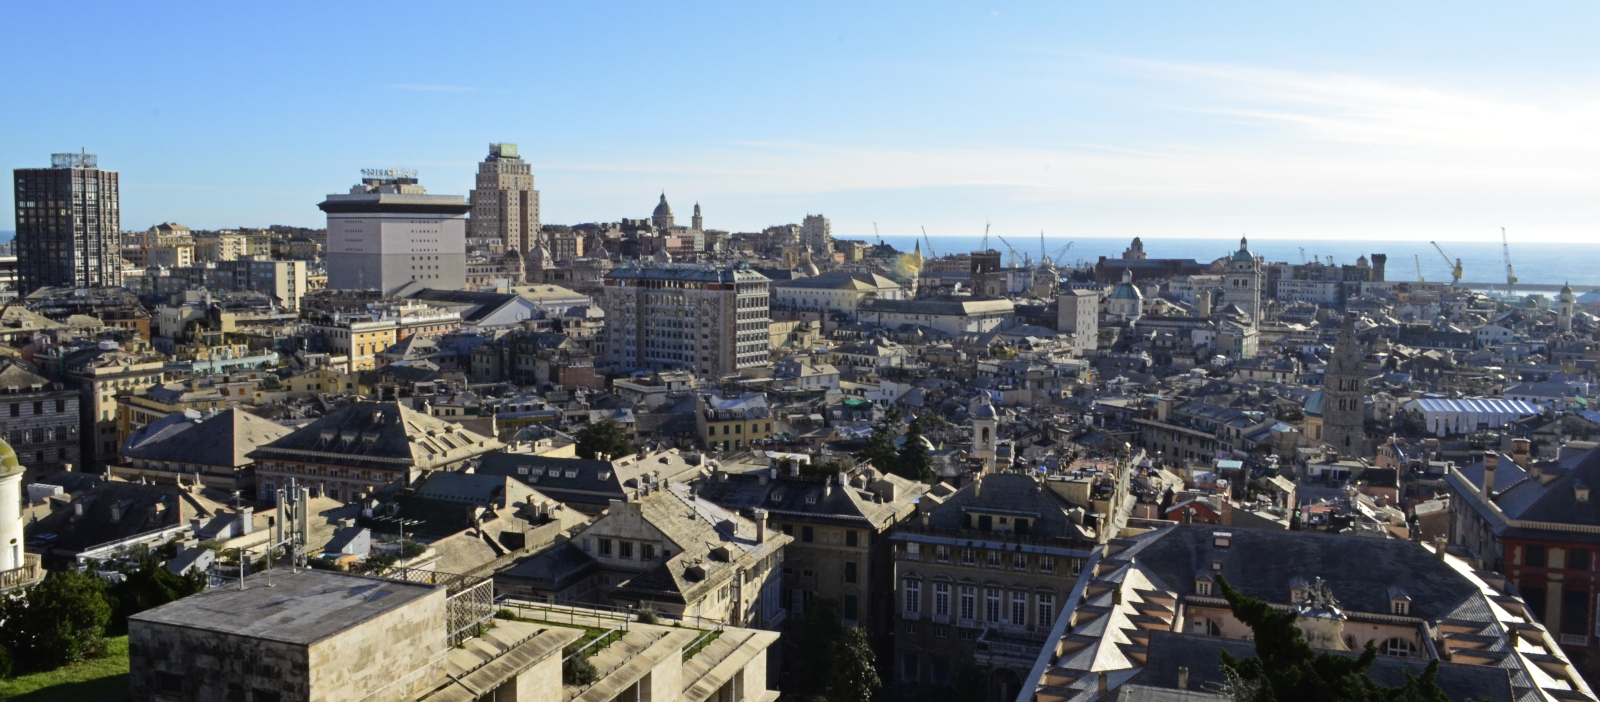 10 Top Unique And Unusual Things To Do In Genoa